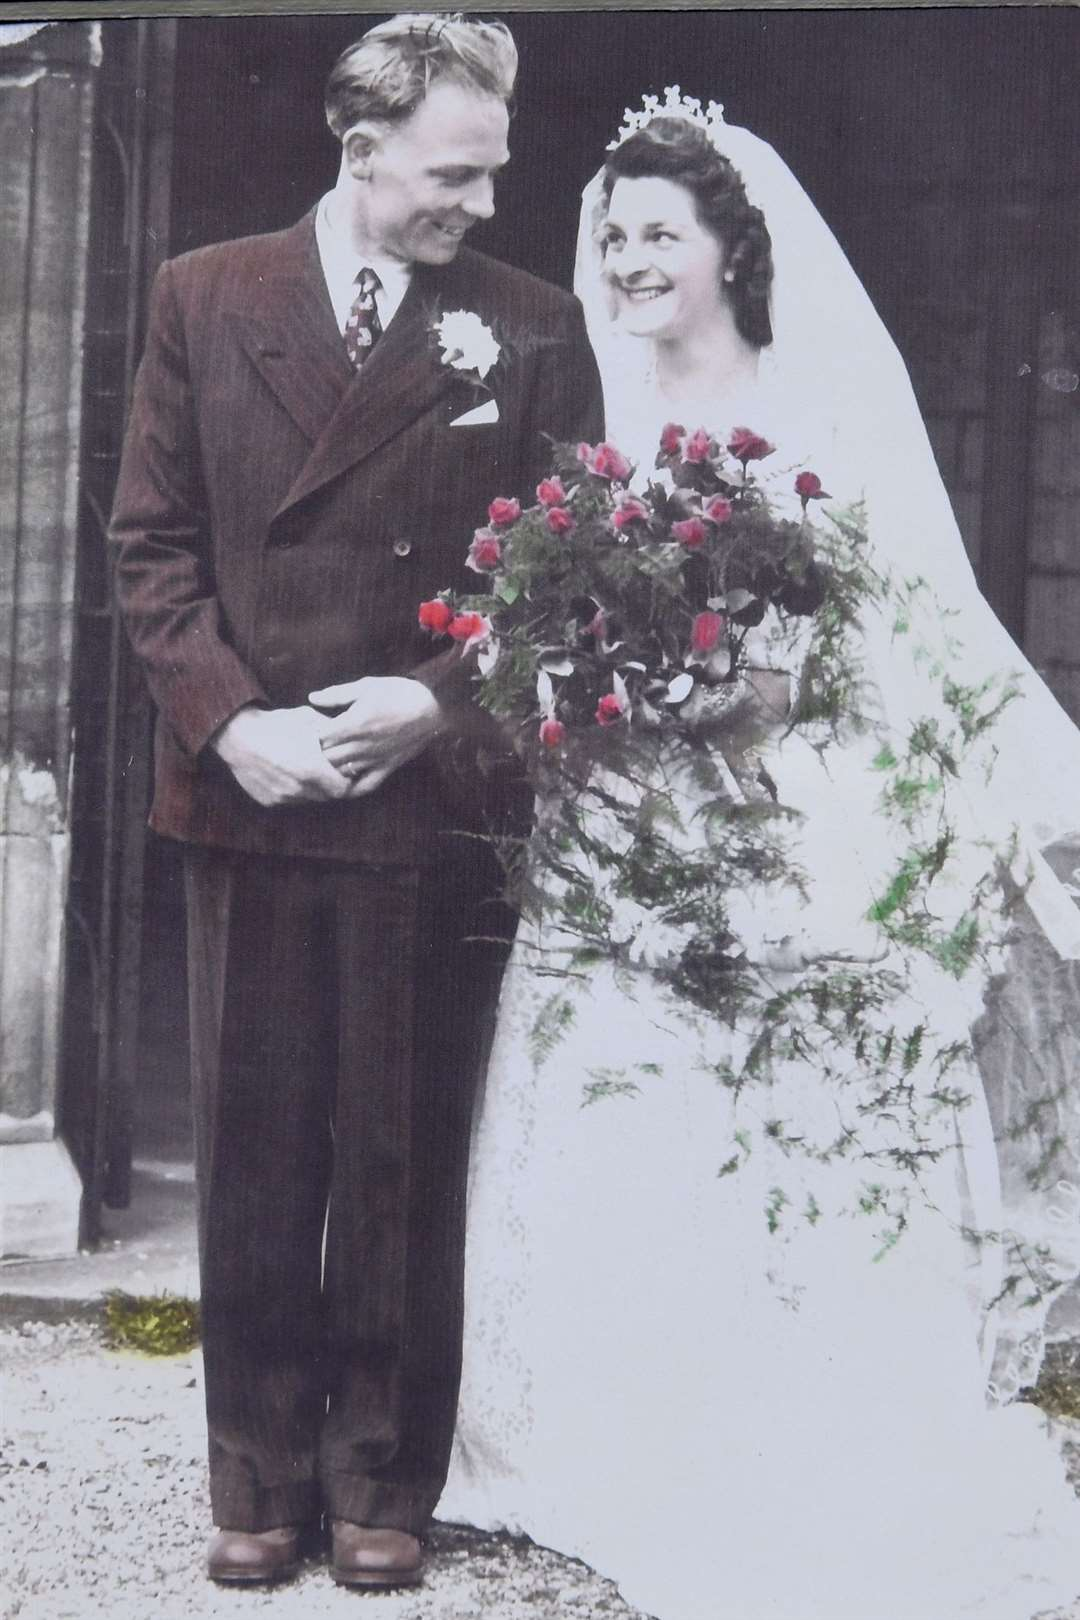 Stan and Nancy Renshaw of Screveton, celebrating their 70th wedding anniversary. .Wedding day photographs.. (8395208)